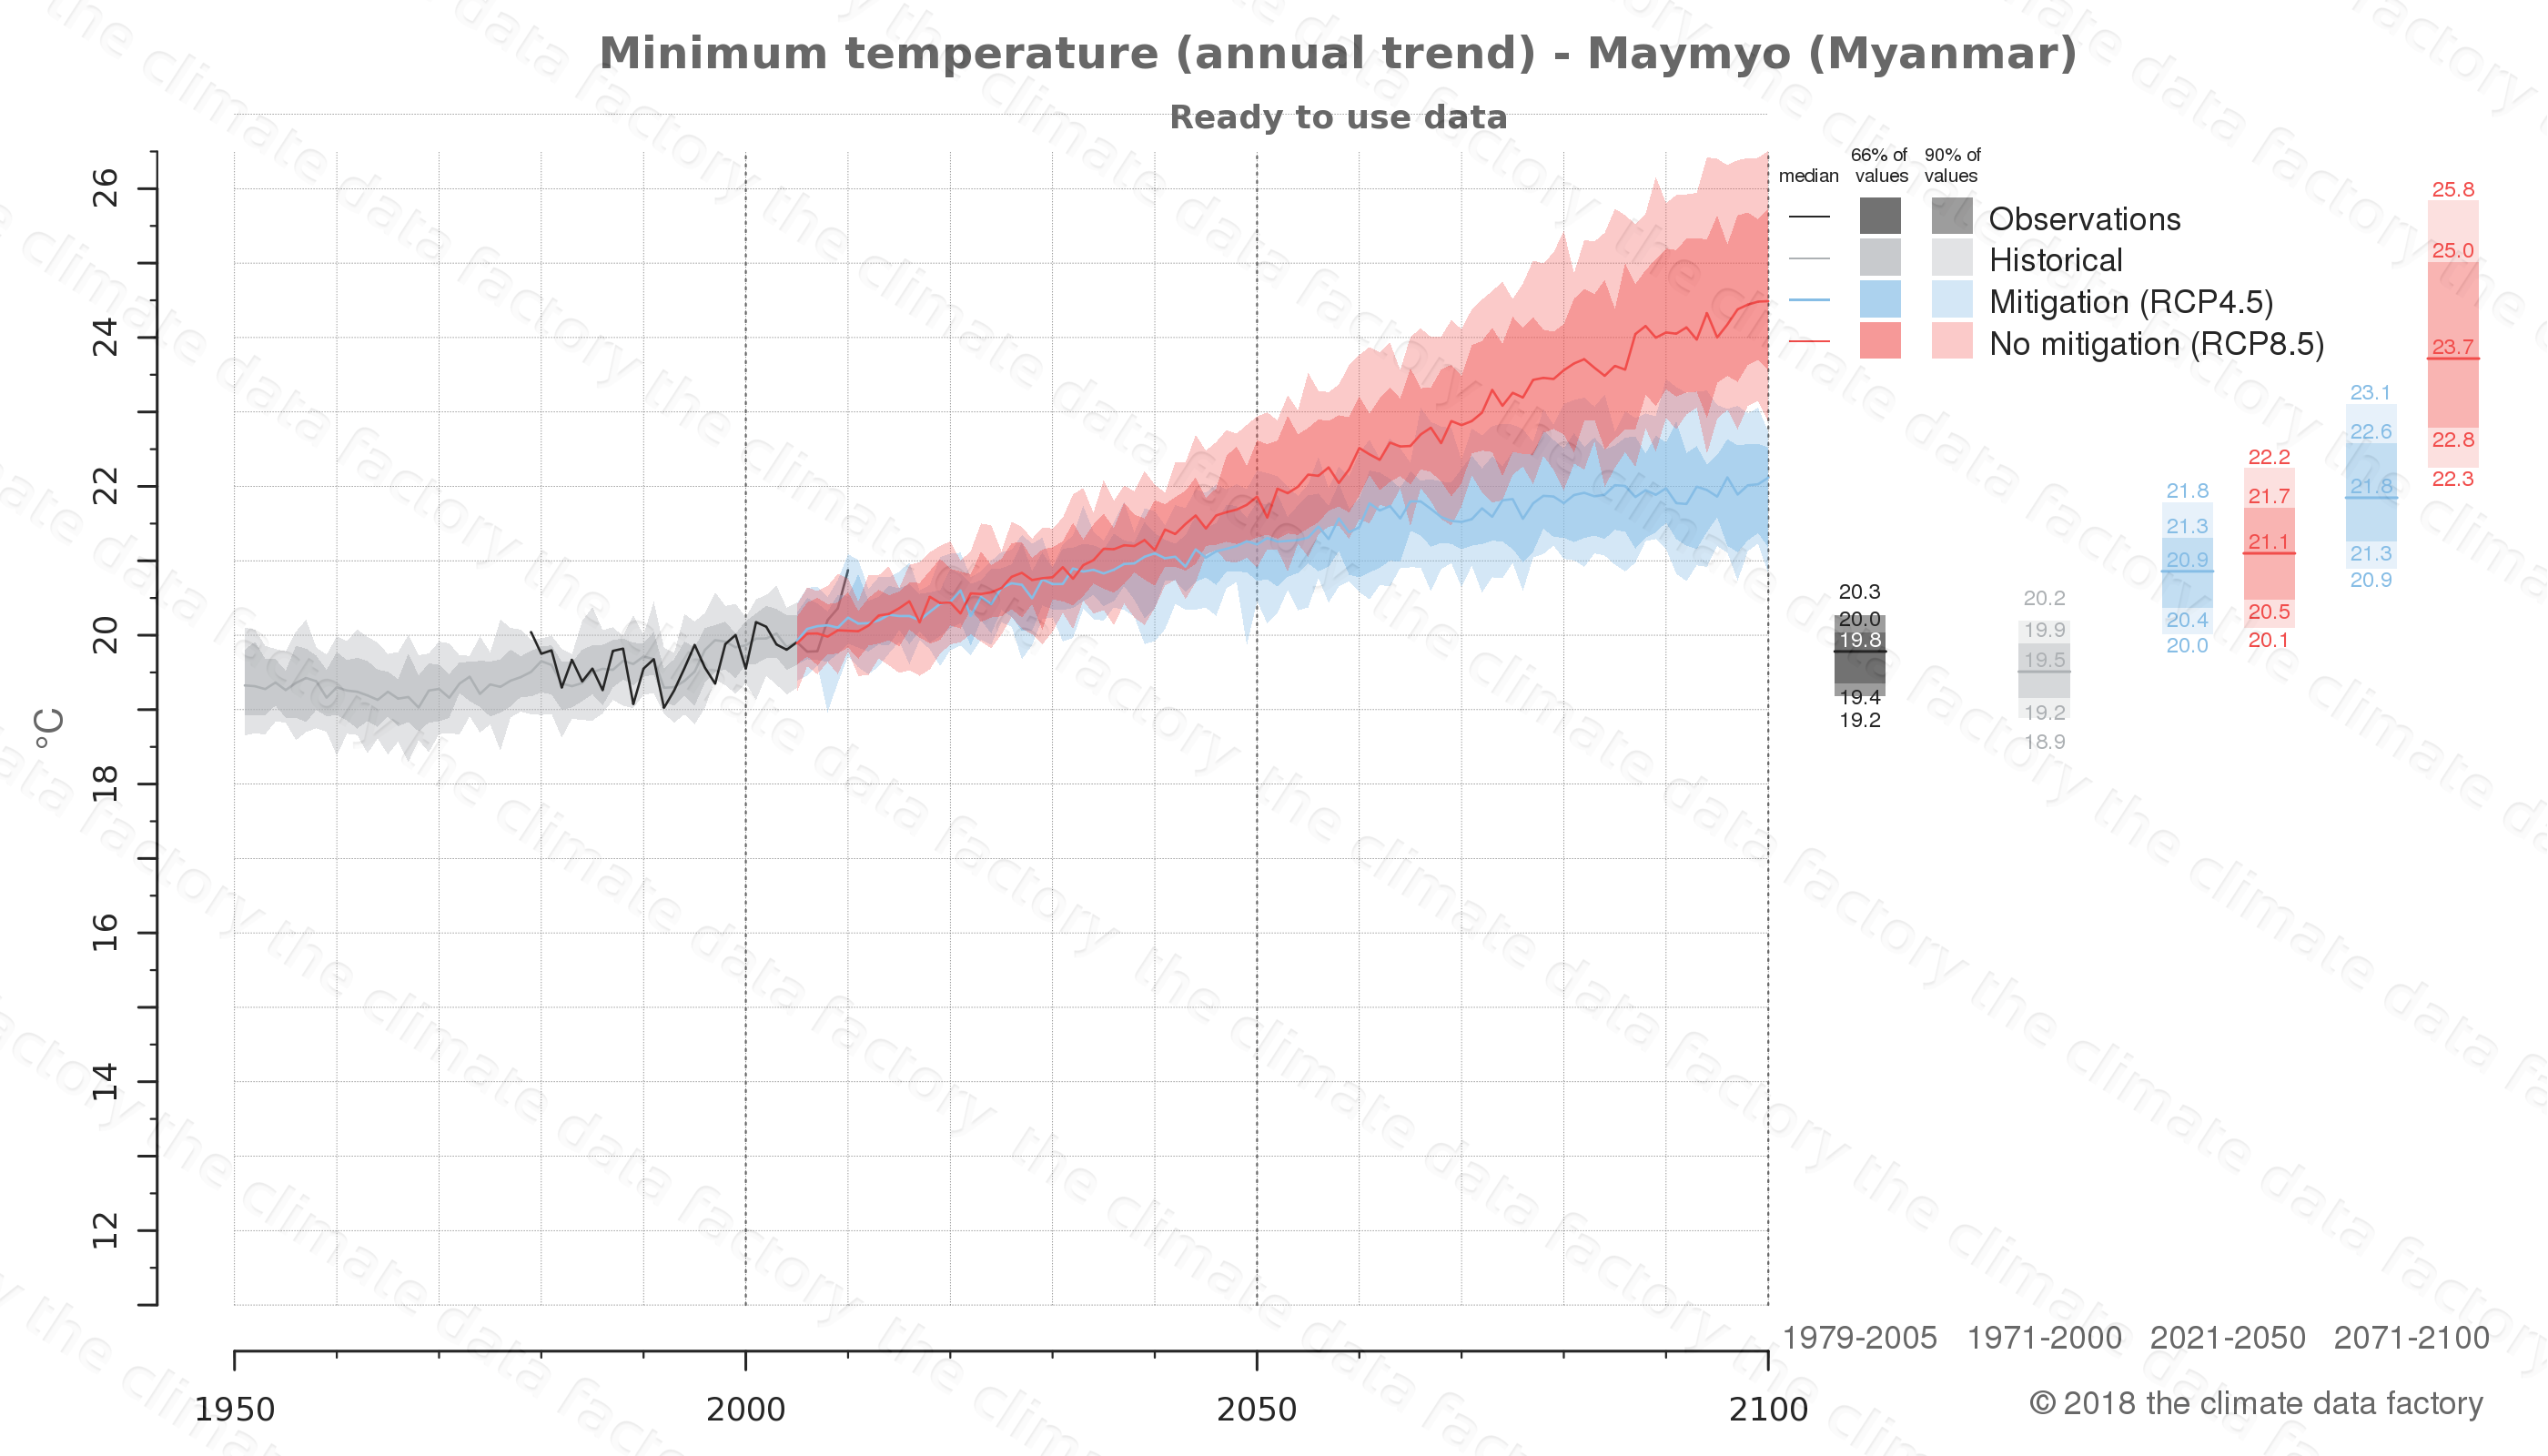 climate change data policy adaptation climate graph city data minimum-temperature maymyo myanmar